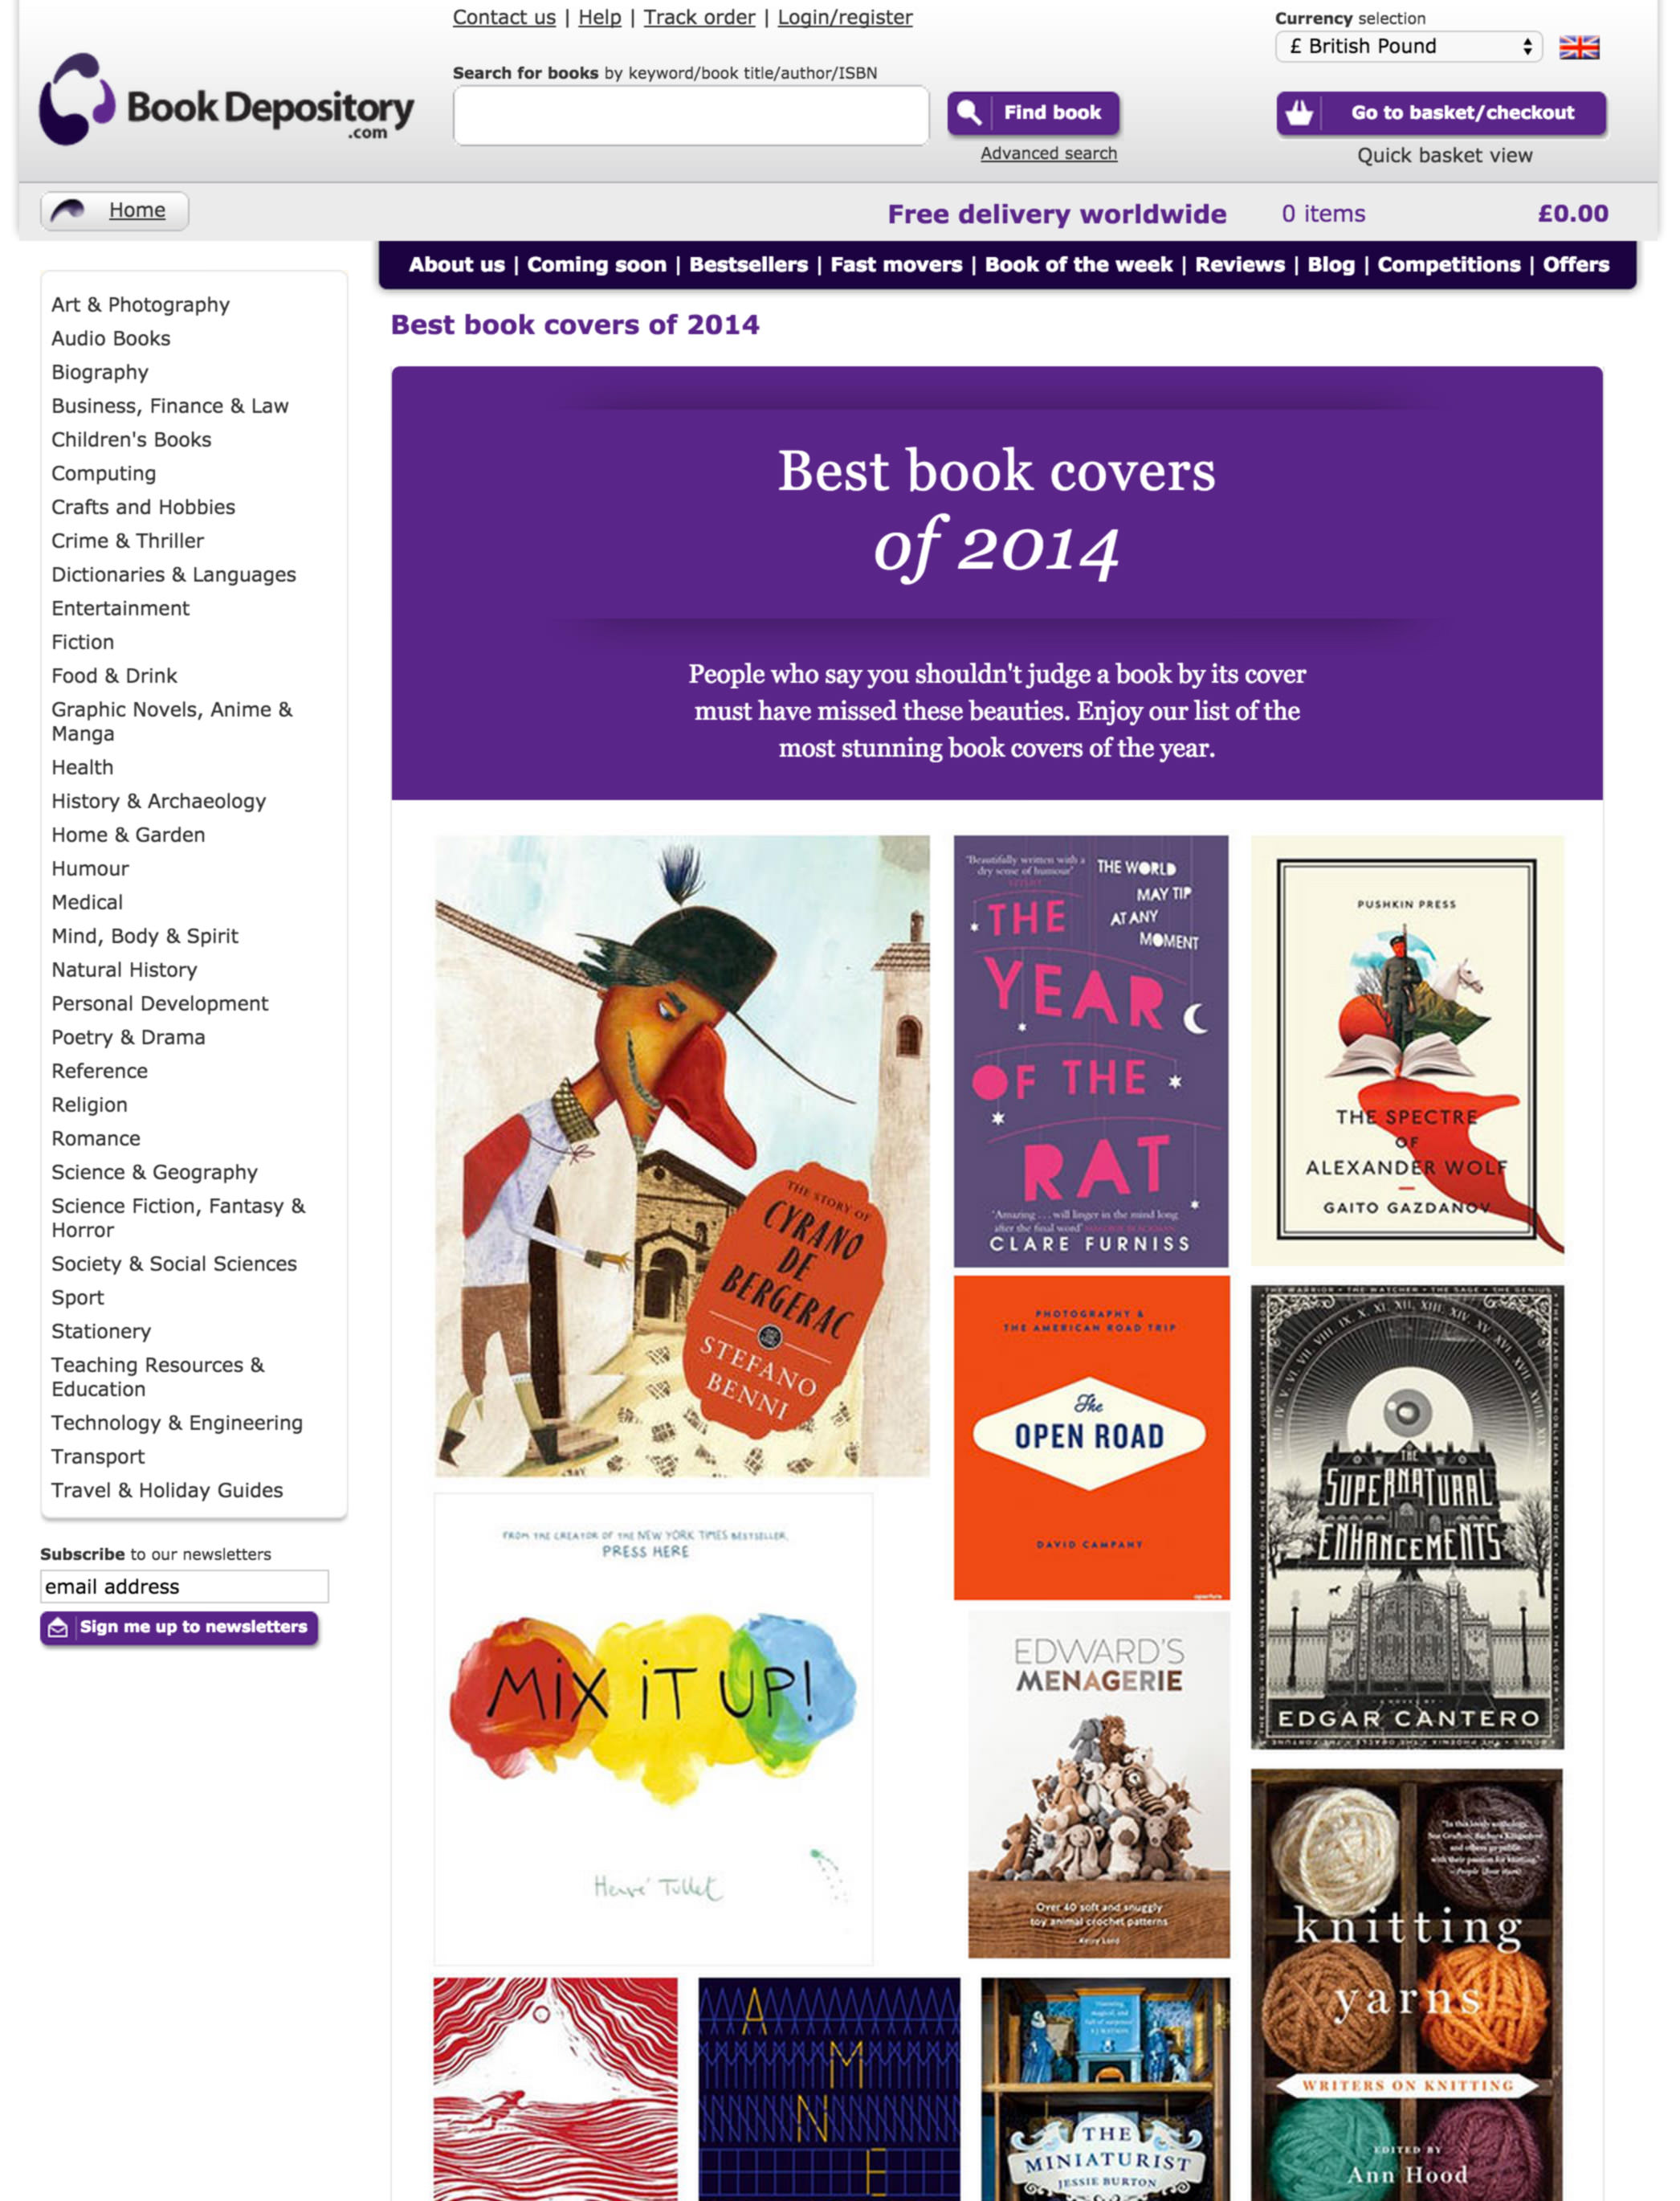 Best book covers landing page